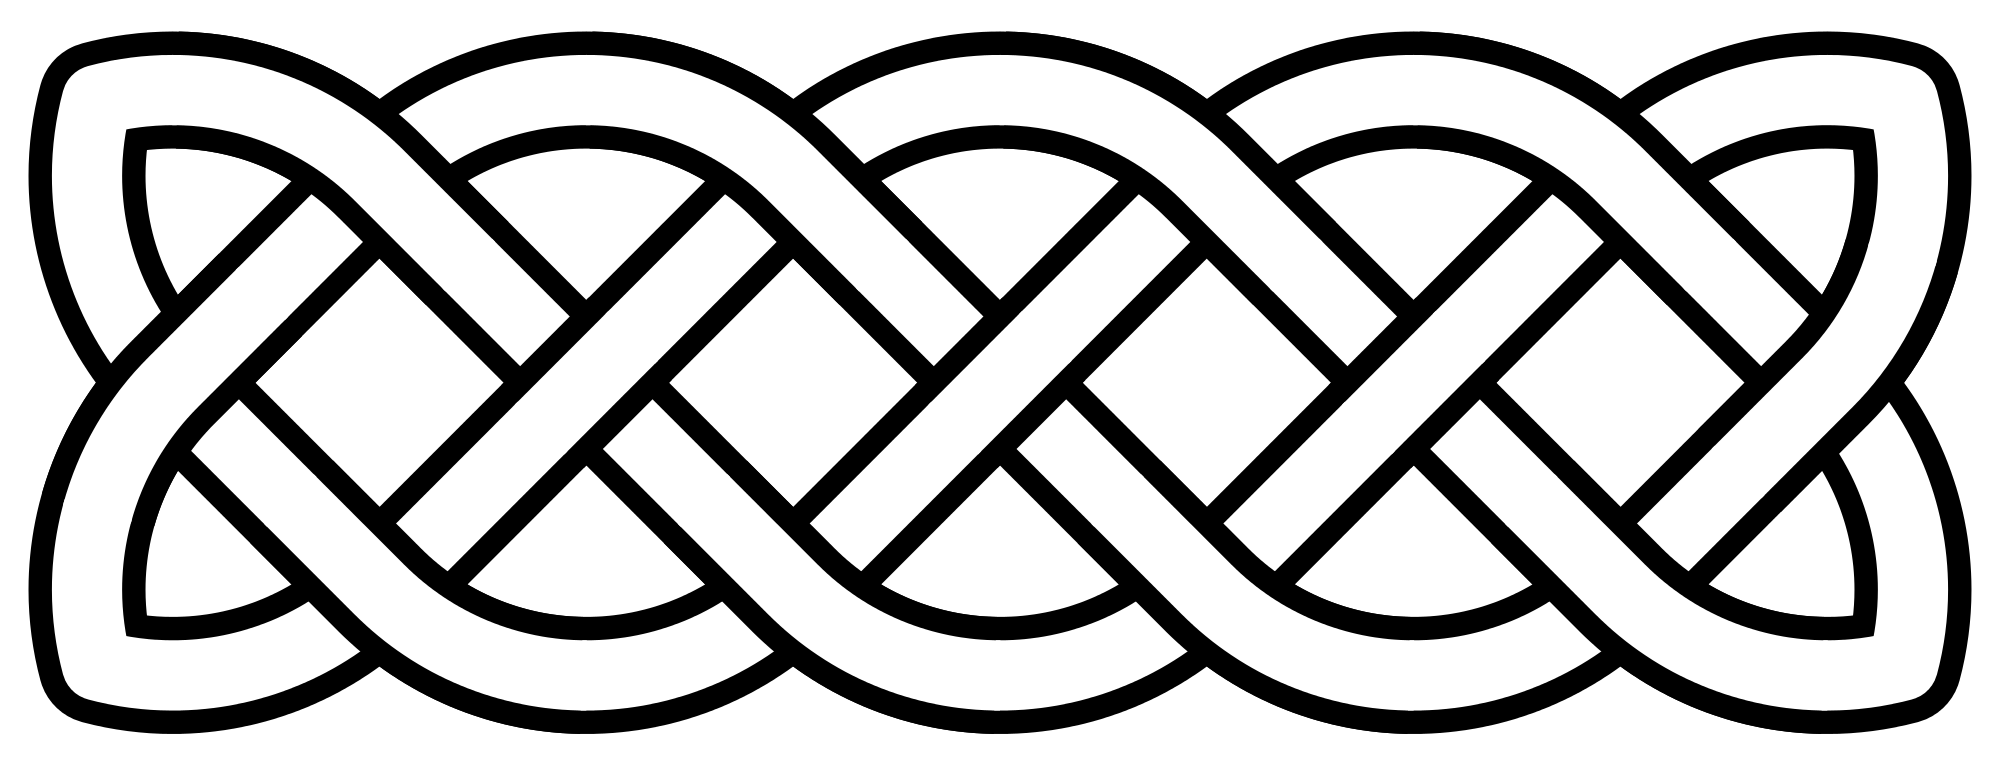 Braided rope clipart svg free download Irish clipart braided rope, Irish braided rope Transparent FREE for ... svg free download